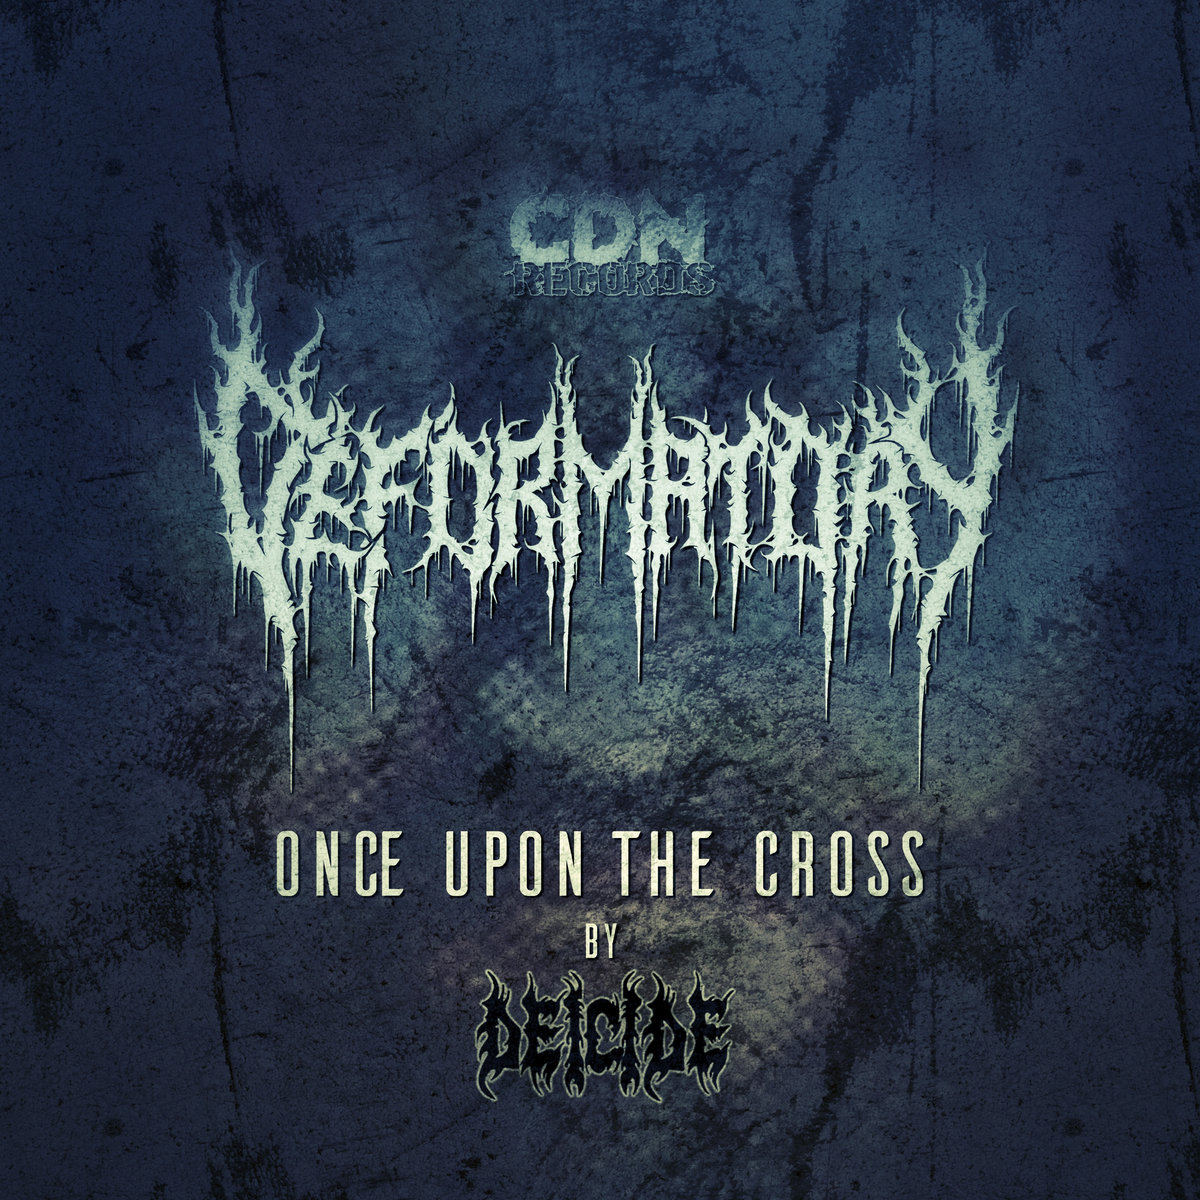 Once Upon The Cross (Deicide Cover) by DEFORMATORY